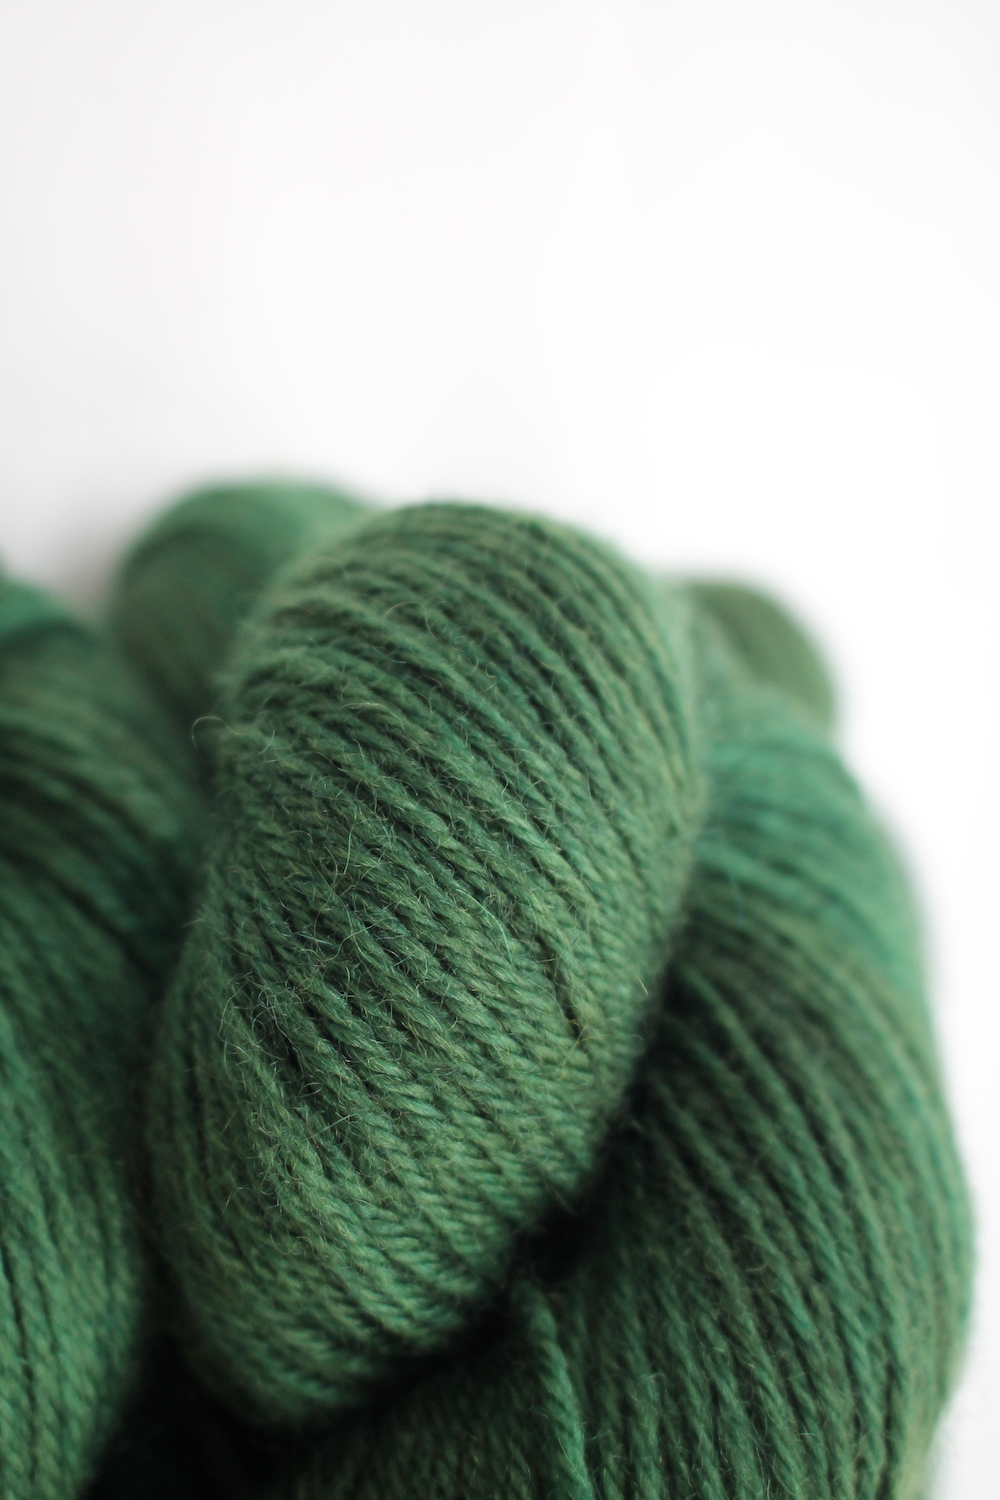 A pile of skeins of Nene DK in forest green